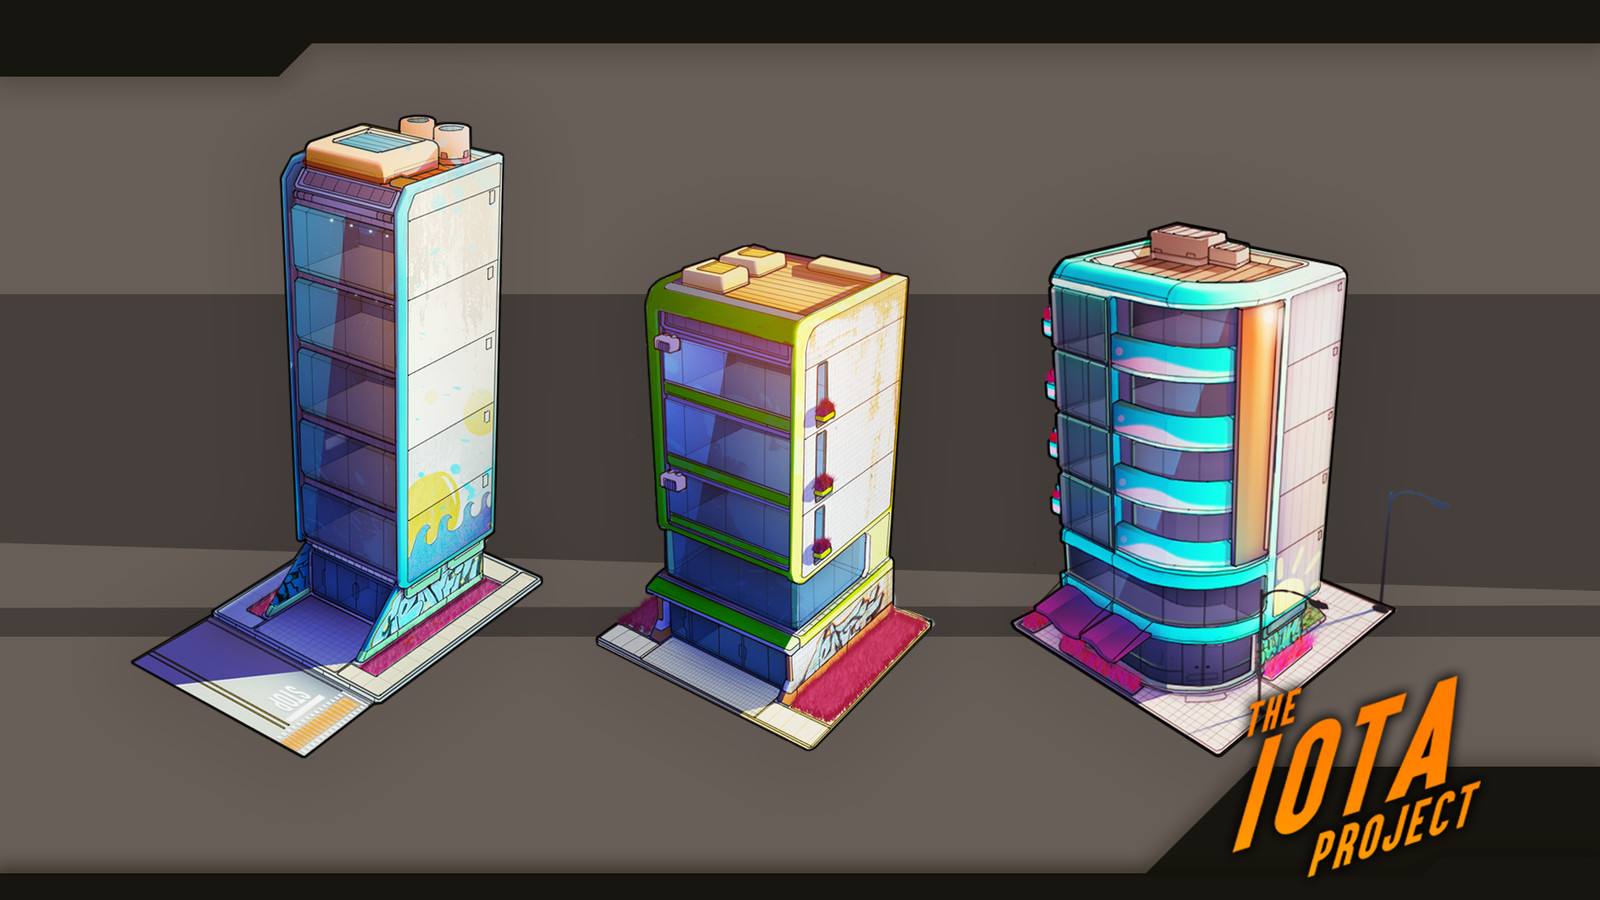 Some early building concepts.